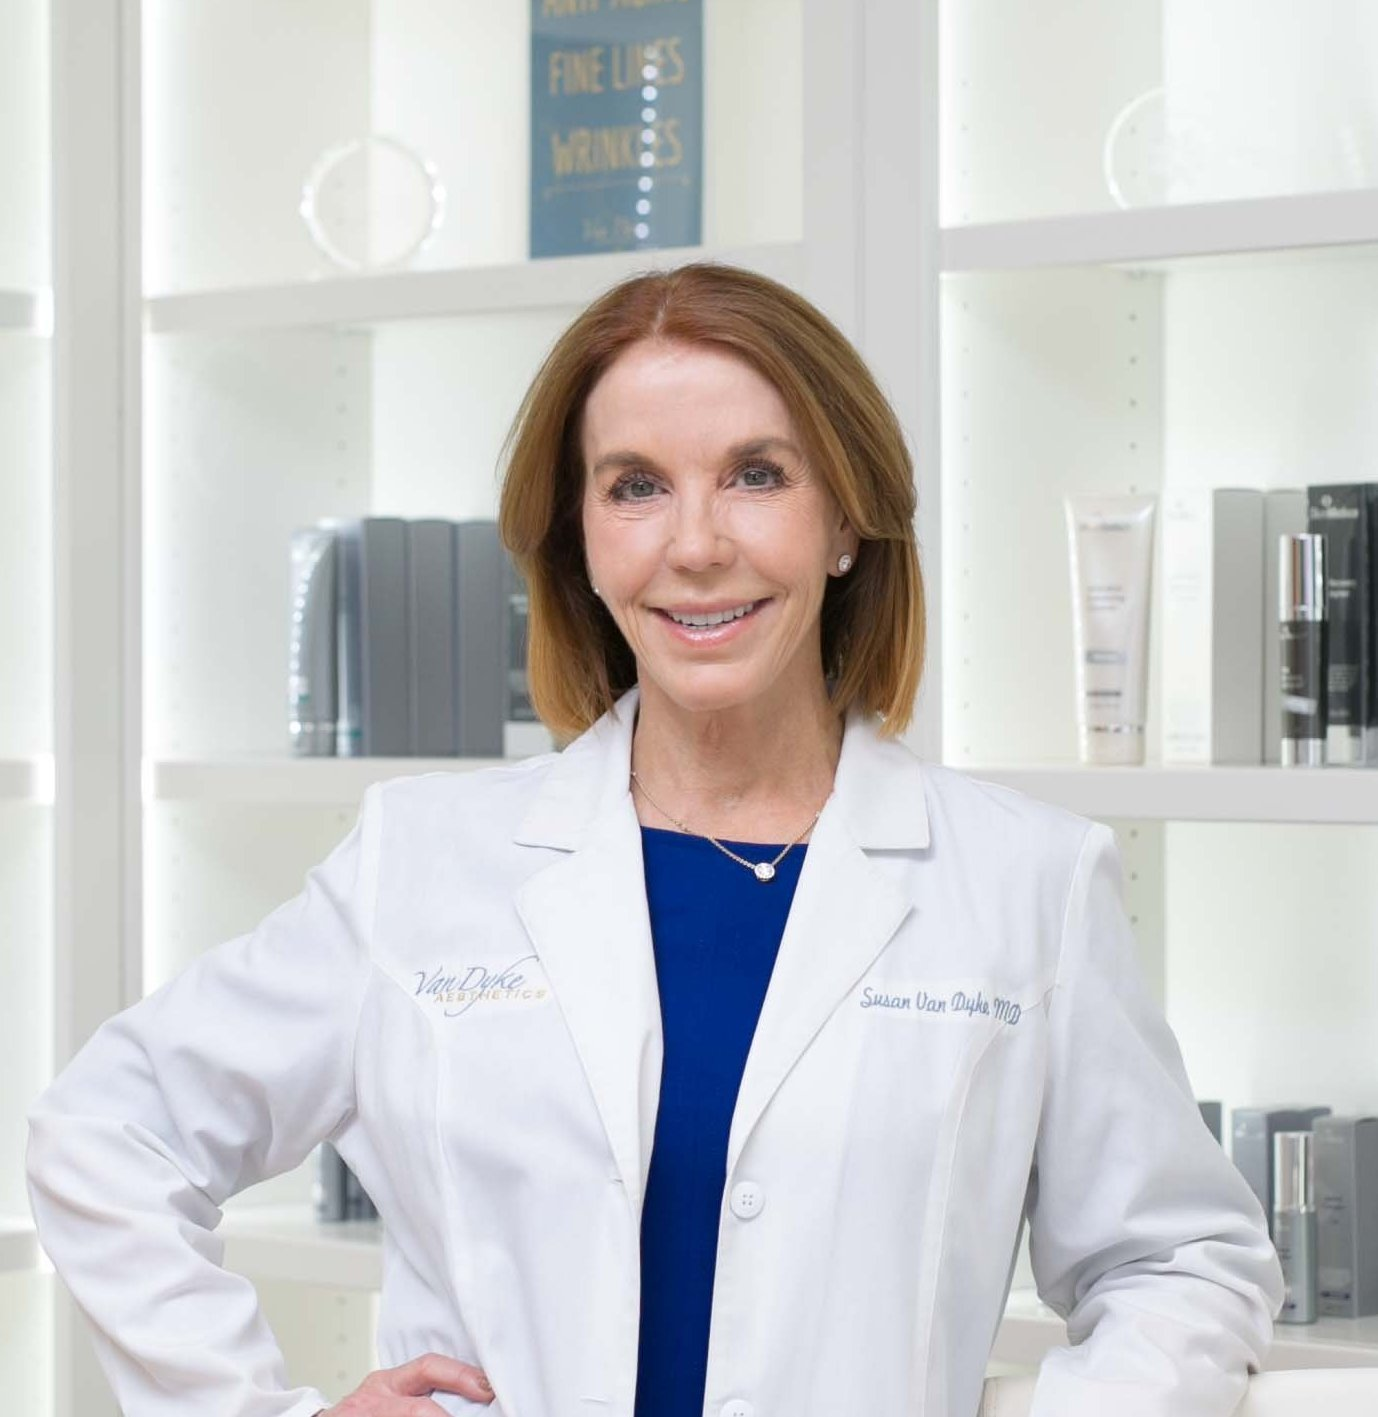 Platinum Dermatology Partners Adds 3rd Practice in Arizona This Year ...